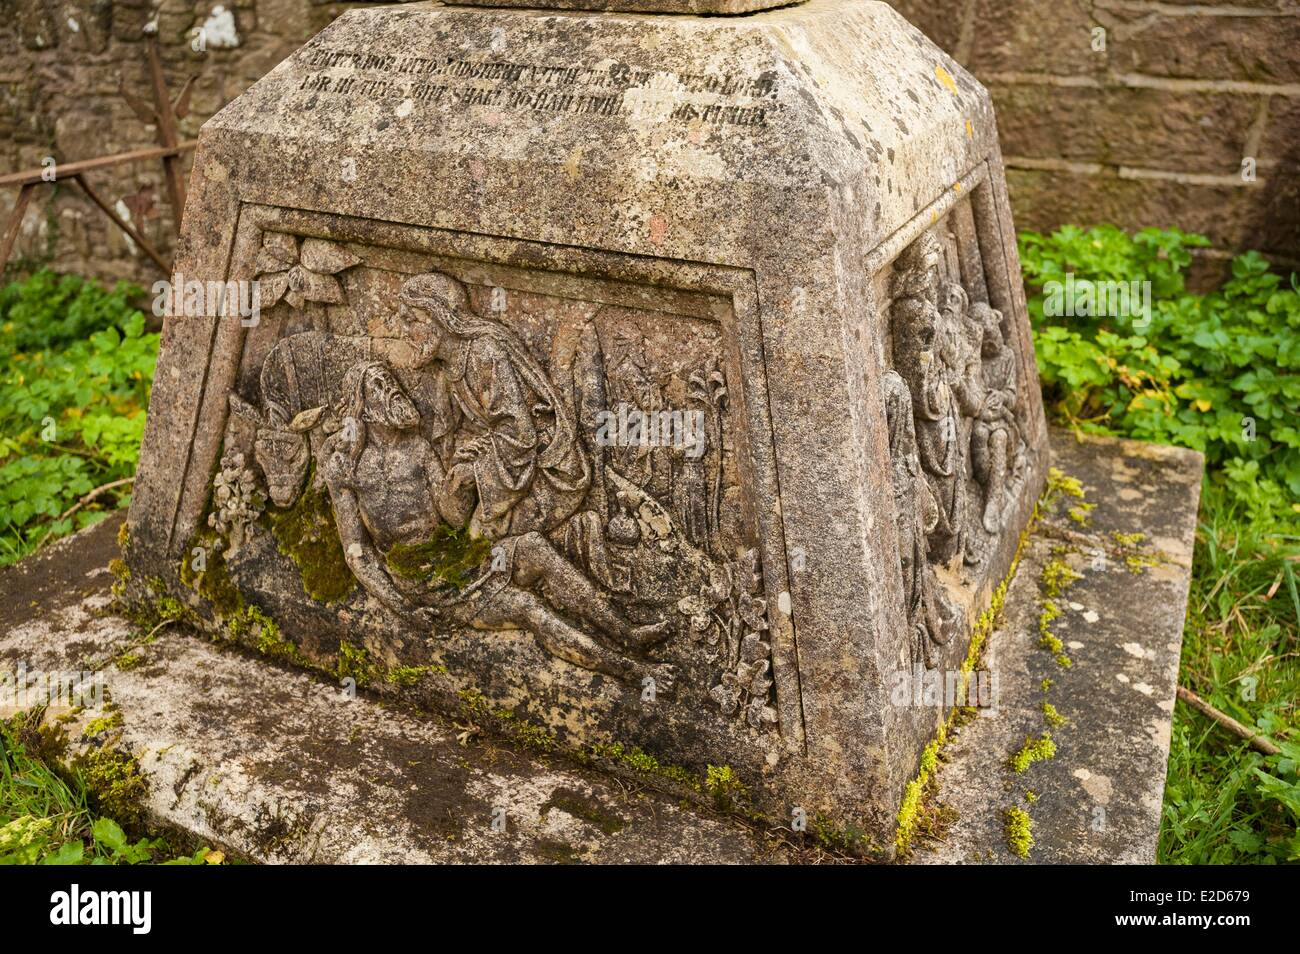 United Kingdom Northern Ireland County Antrim Cushendall celtic cross in the ruins of the church of Layde - Stock Image